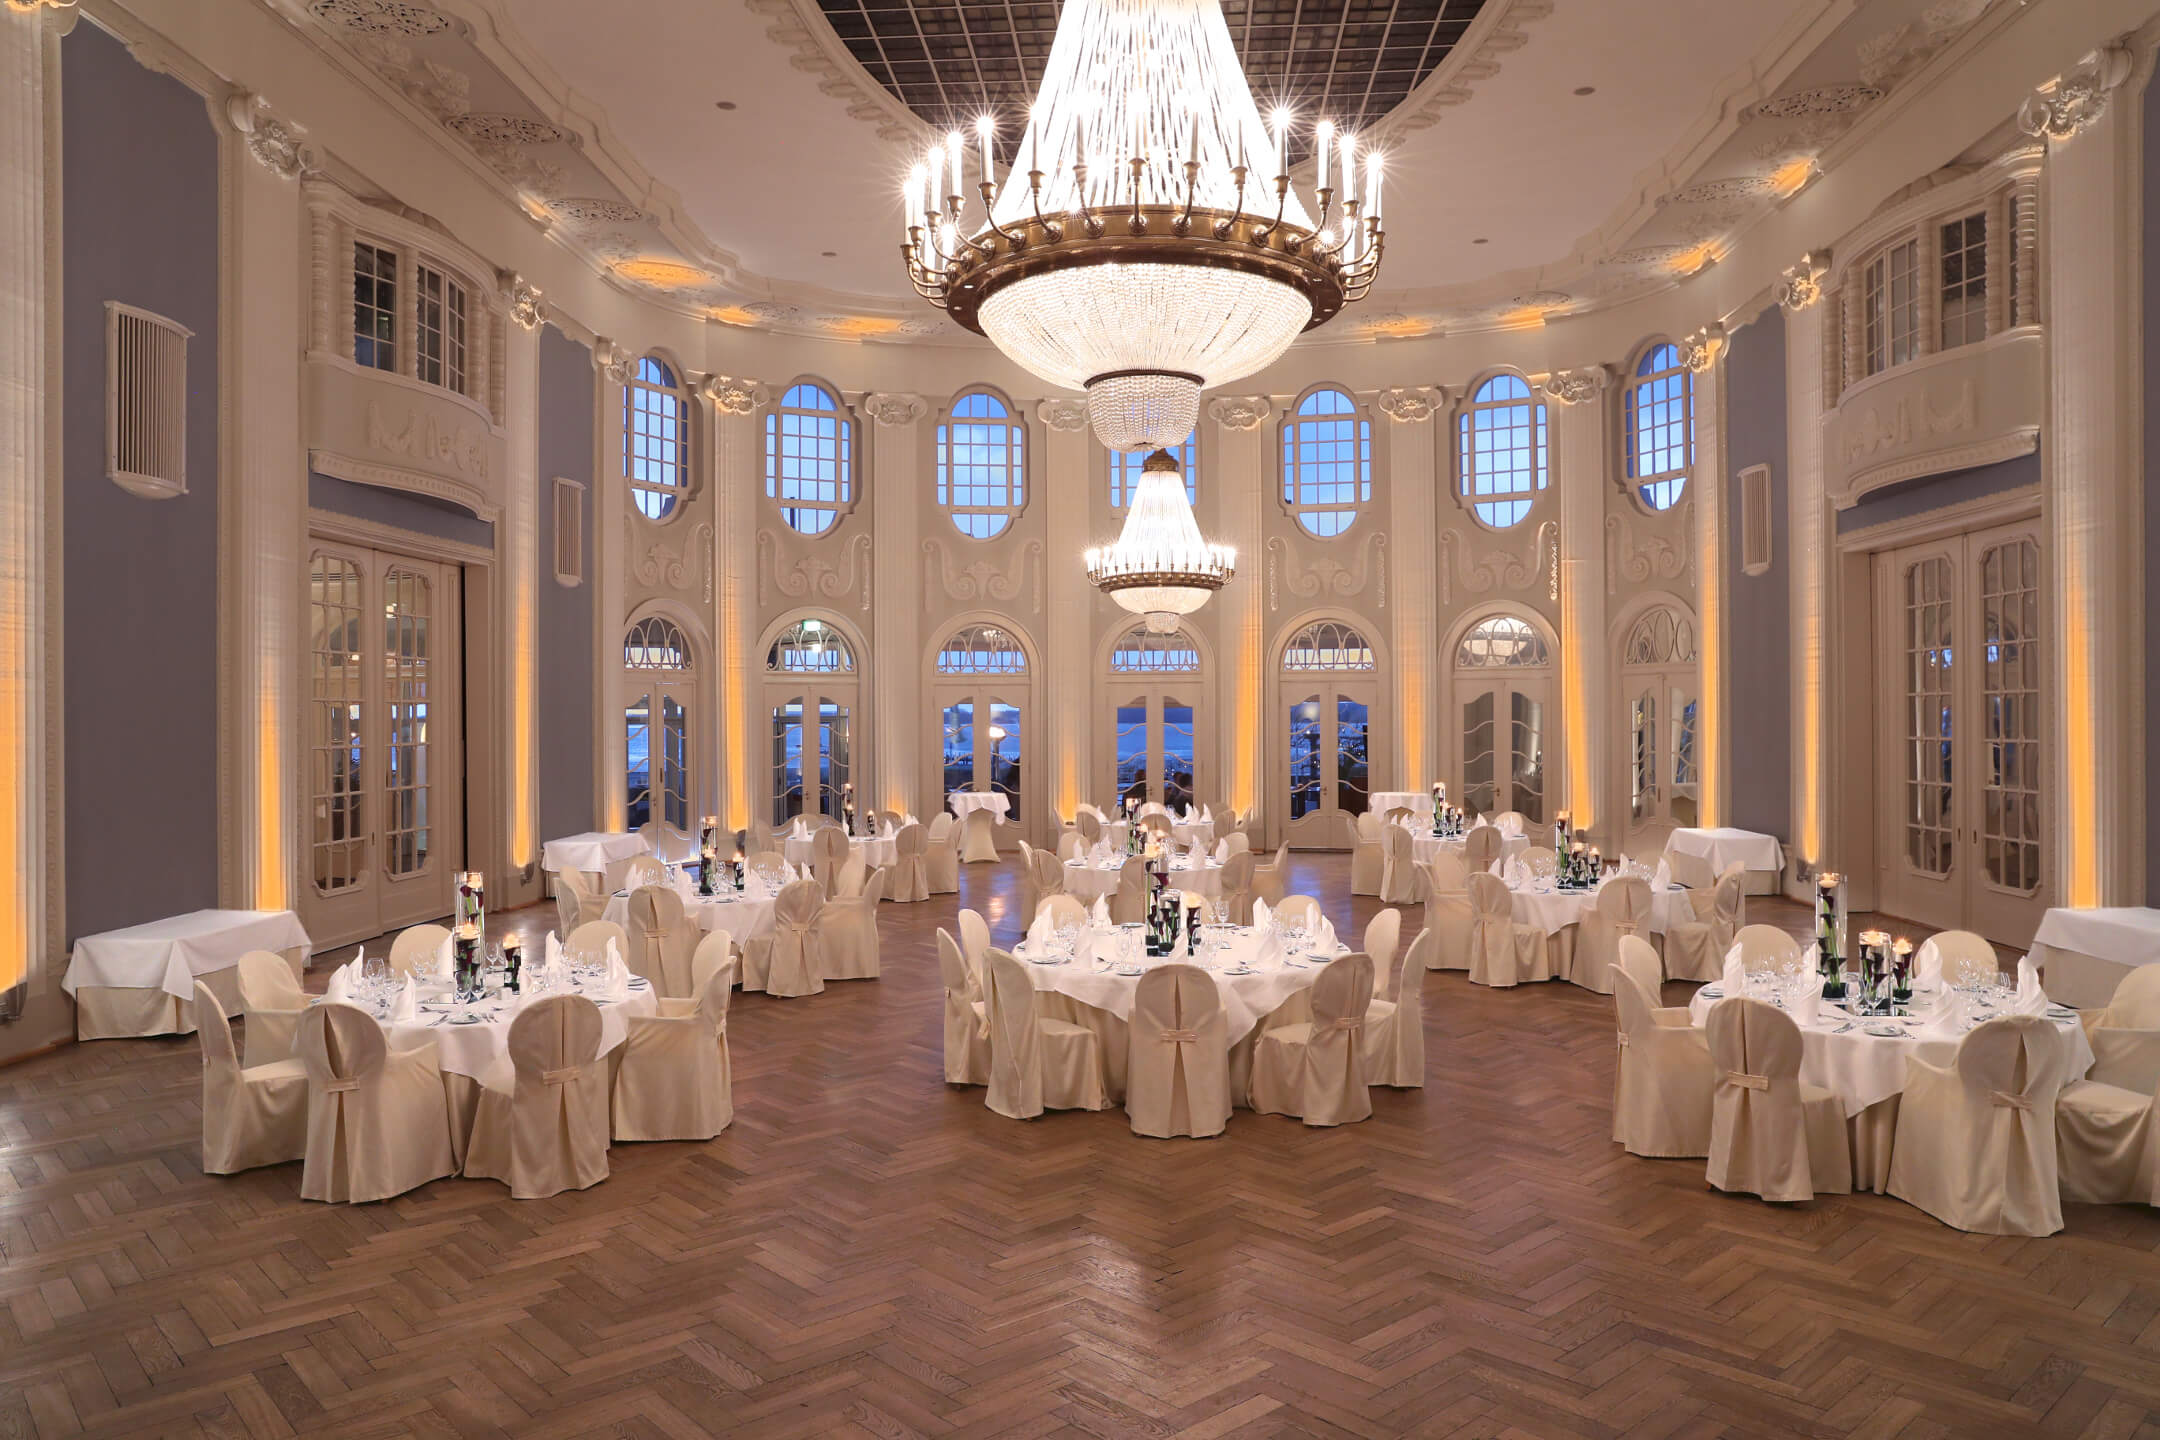 Historic ballroom of the ATLANTIC Grand Hotel Travemünde